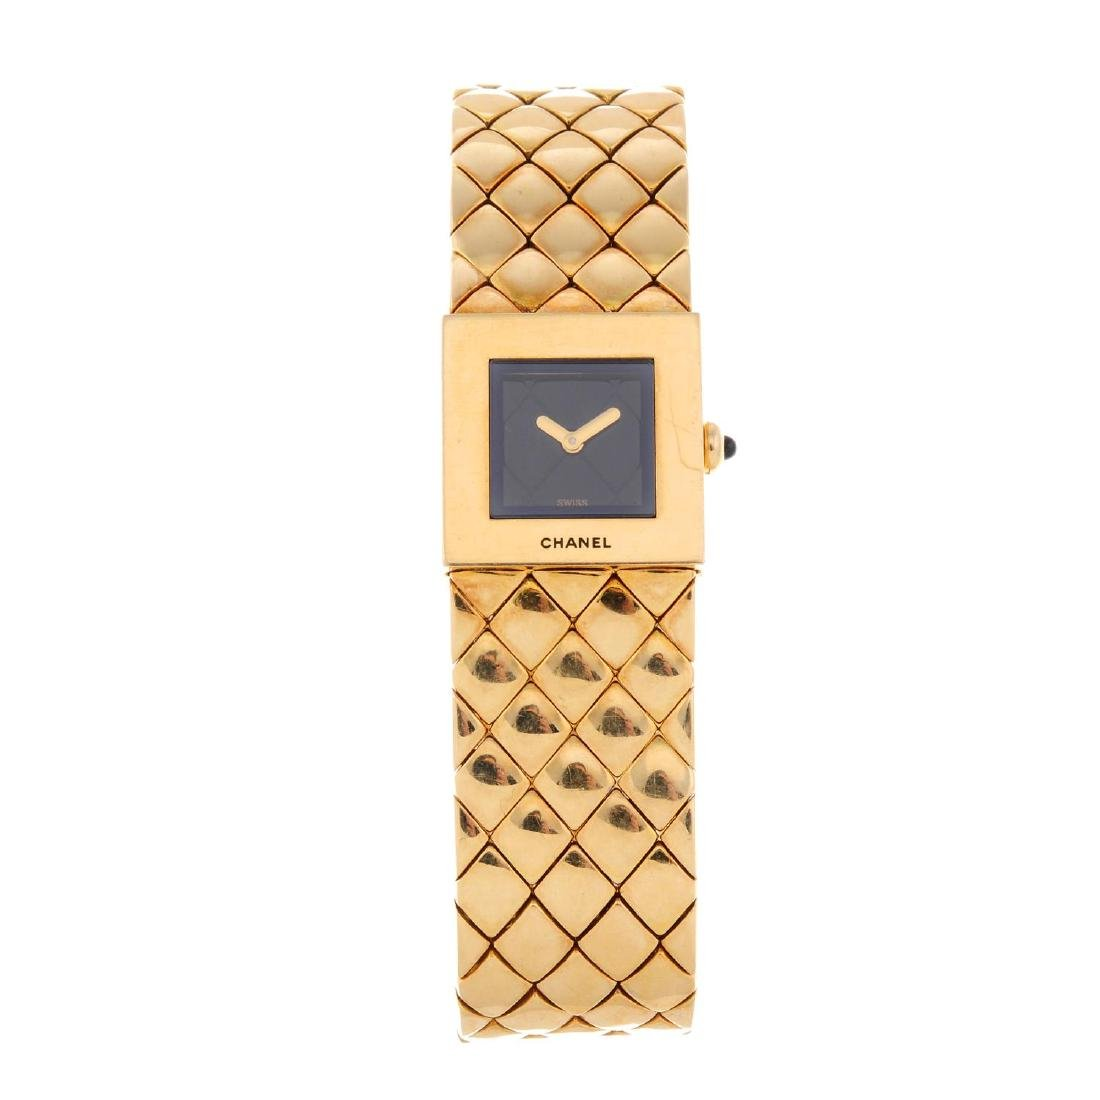 CHANEL - a lady's Matelasse bracelet watch. 18ct yellow